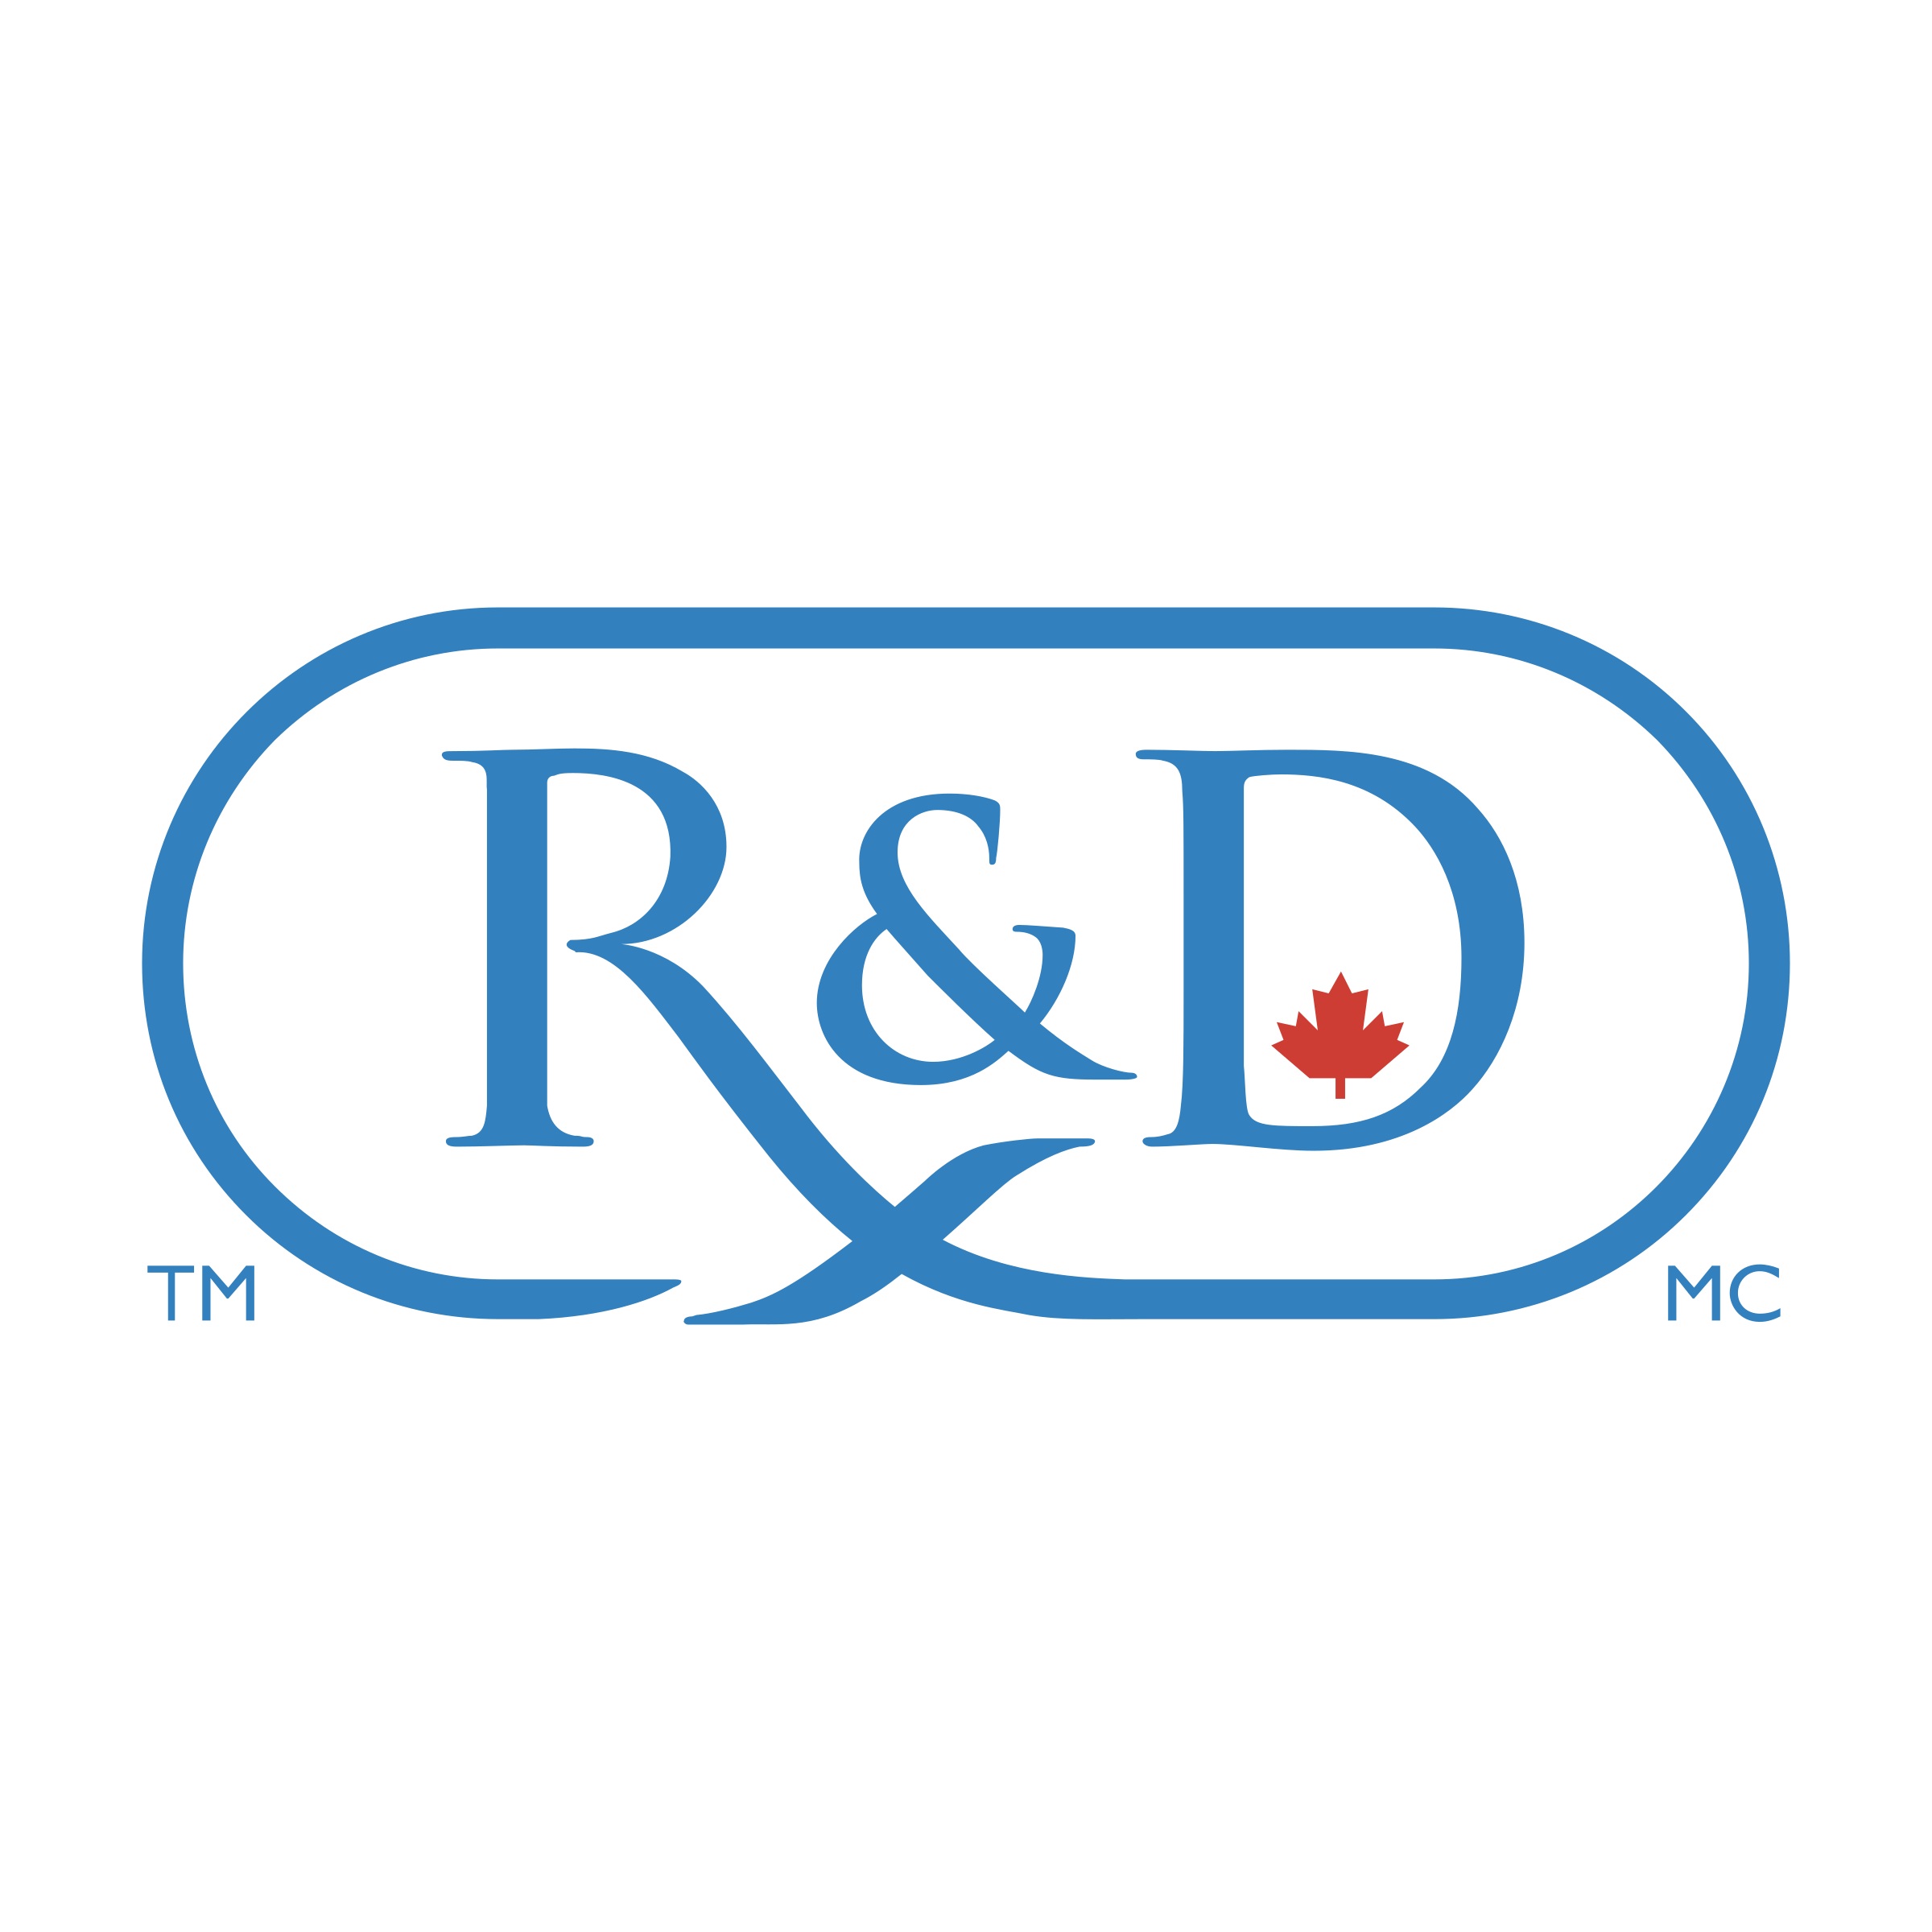 Rx&D Logo PNG Transparent & SVG Vector - Freebie Supply